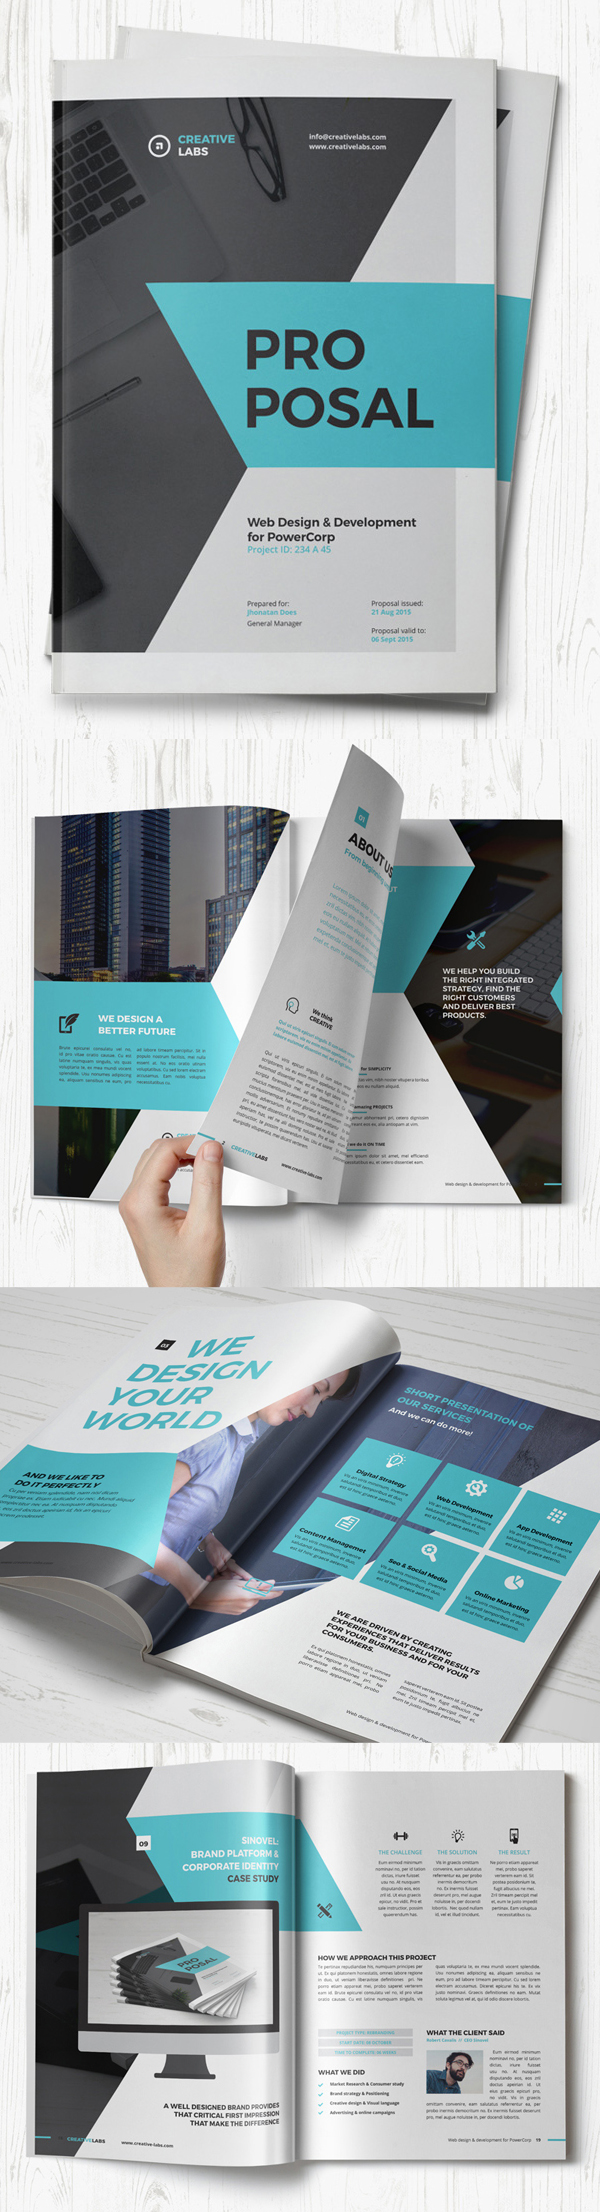 100 Professional Corporate Brochure Templates - 7